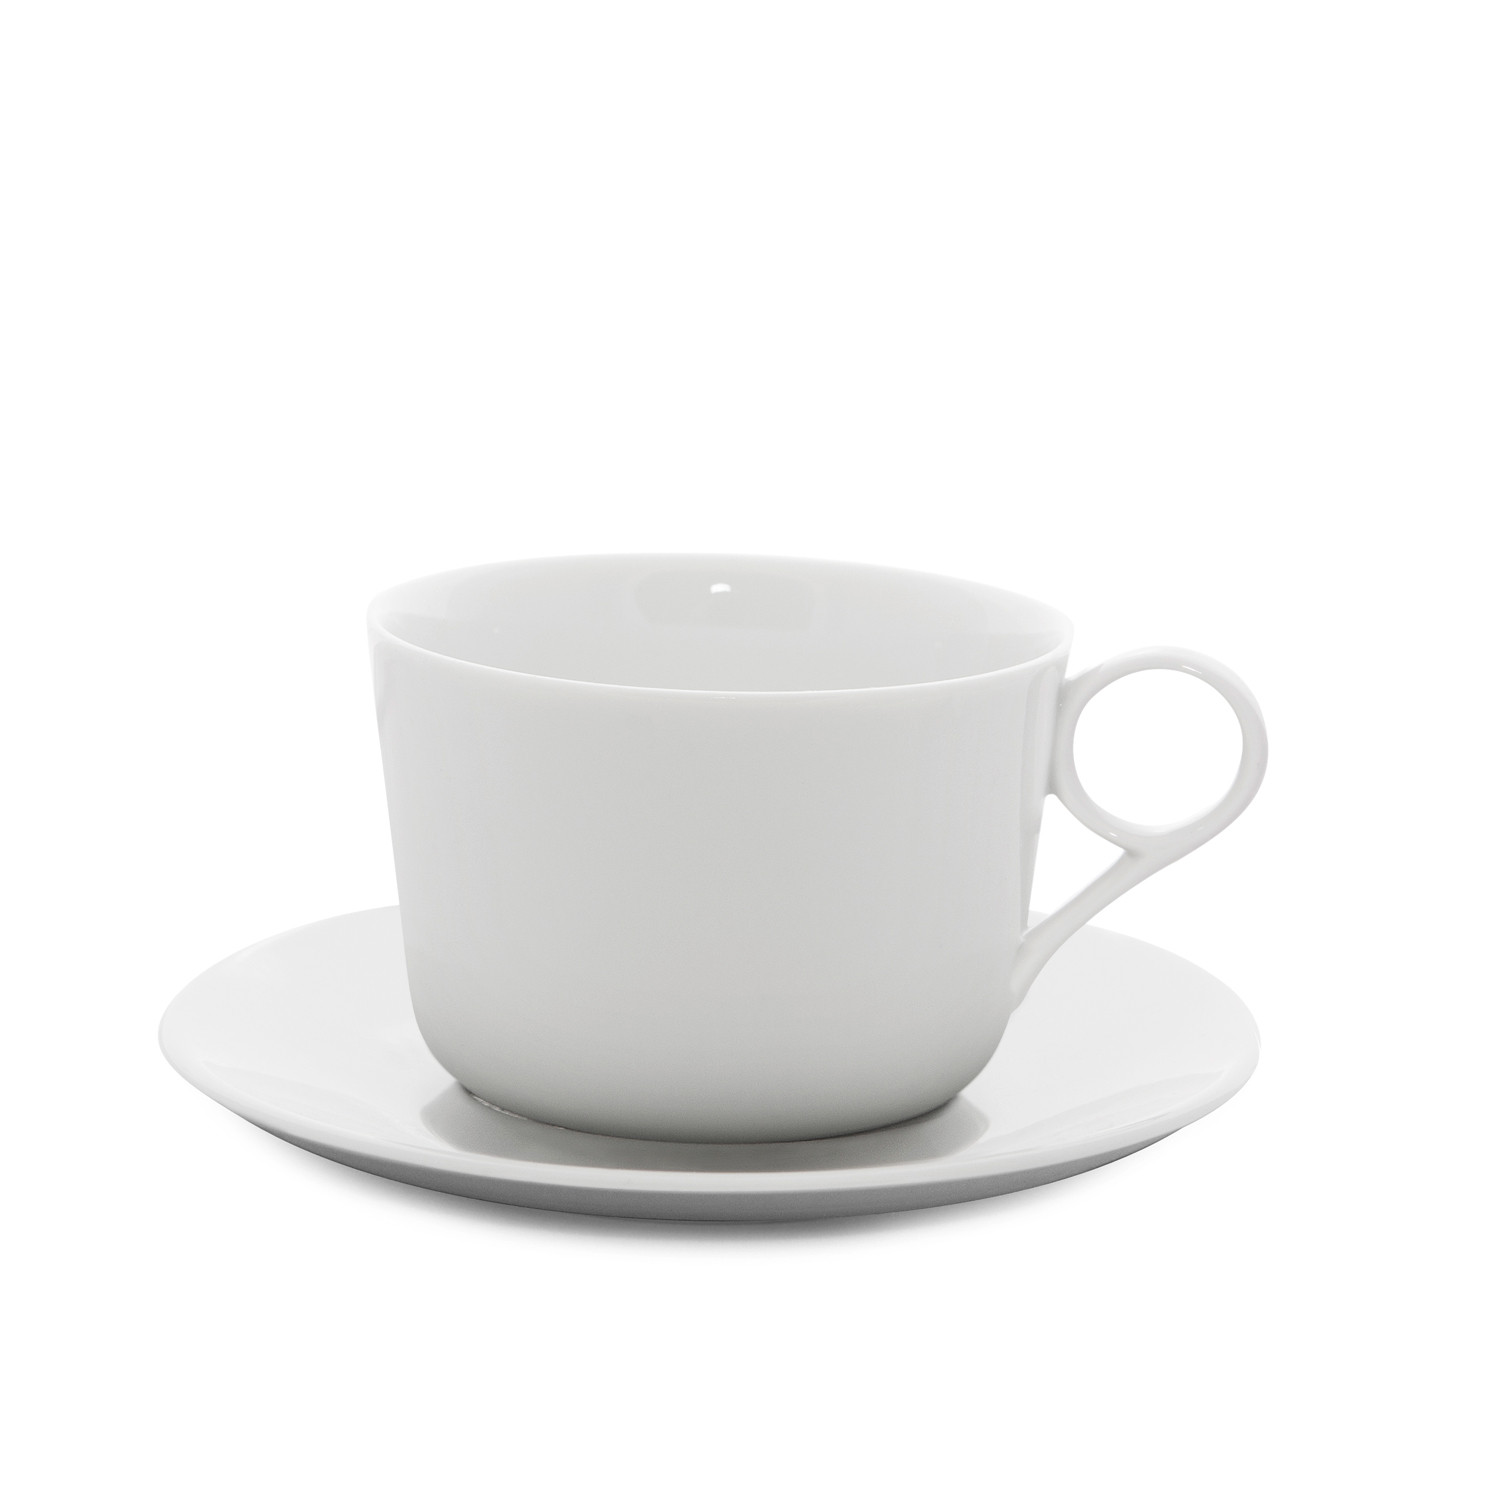 me coffee cup  white (large  oz)  ladp  touch of modern - me coffee cup  white (large  oz)